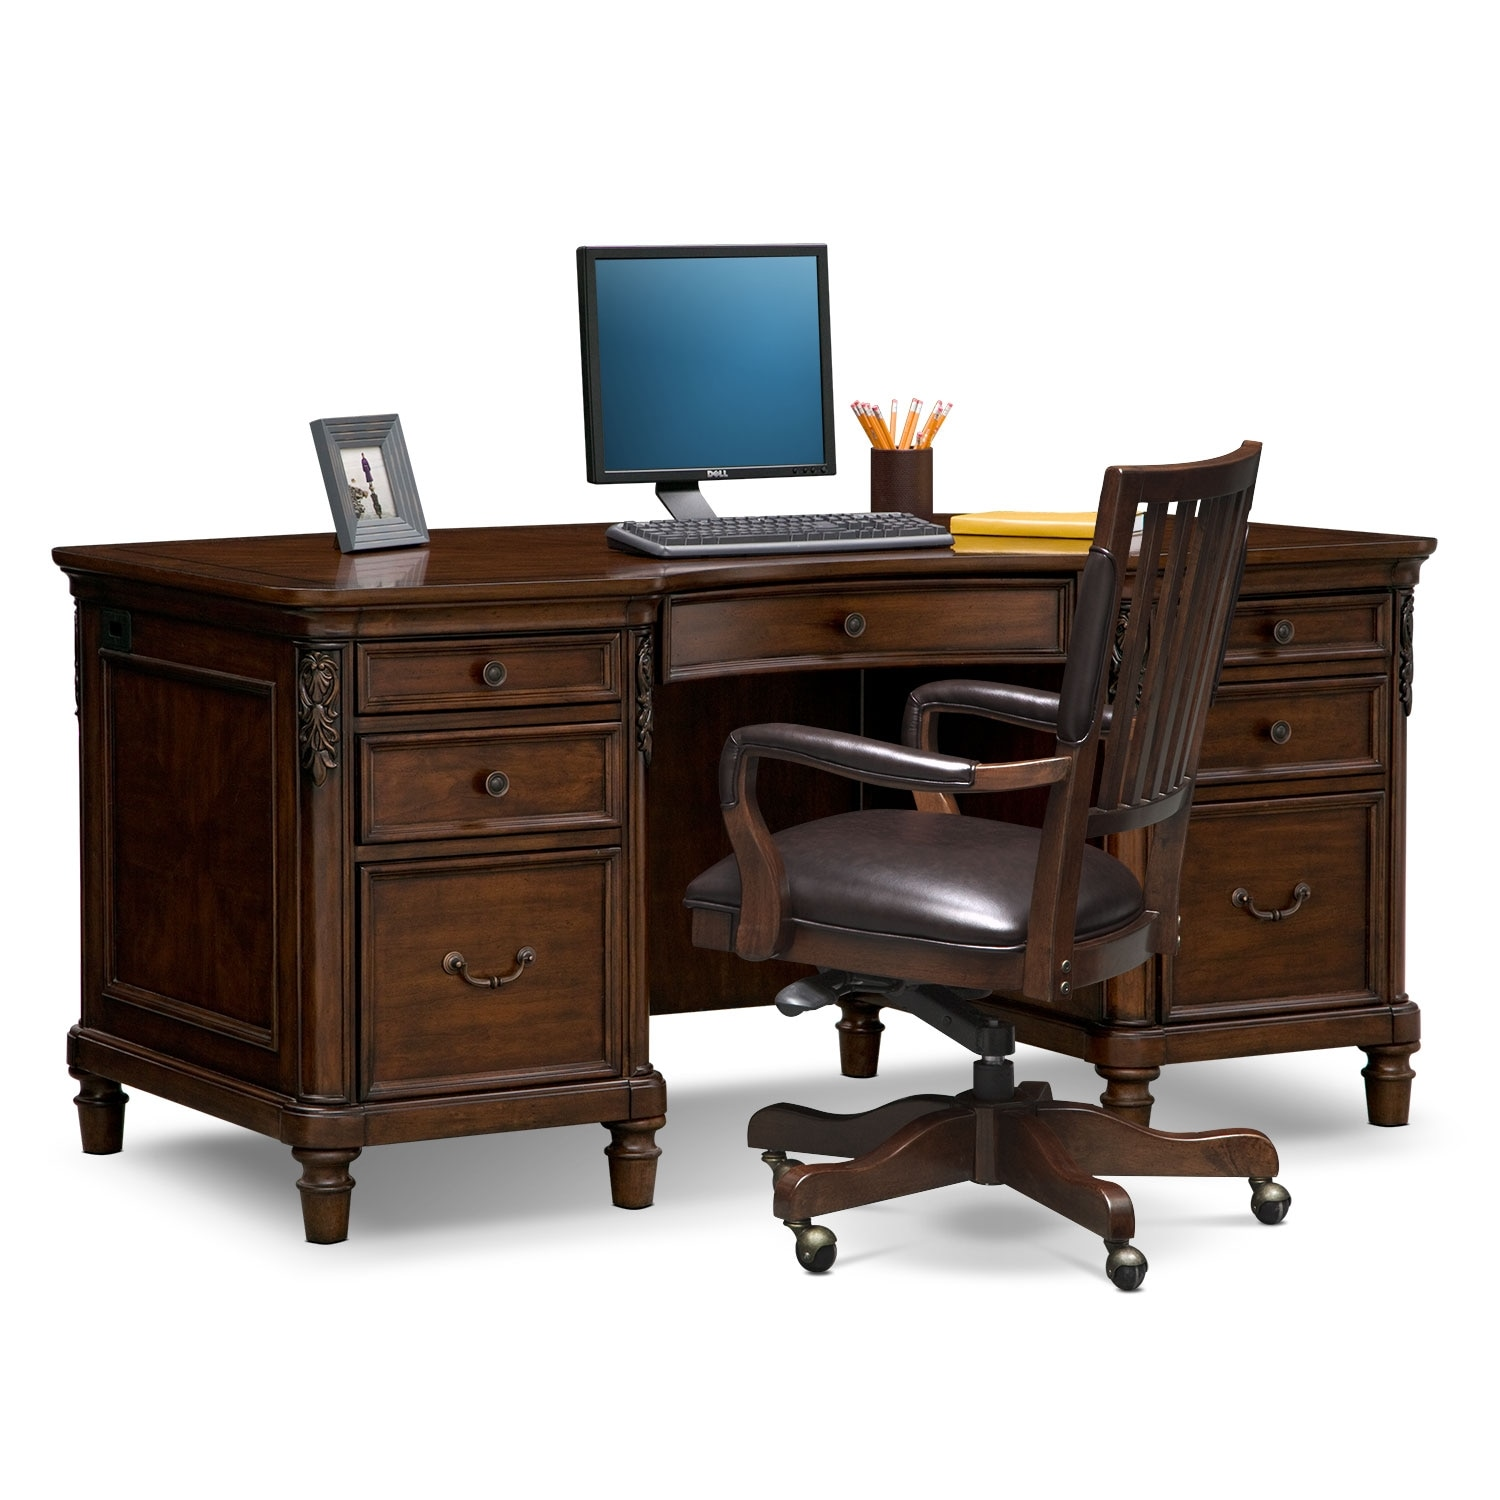 Ashland Executive Desk And Chair Set Cherry Value City Furniture